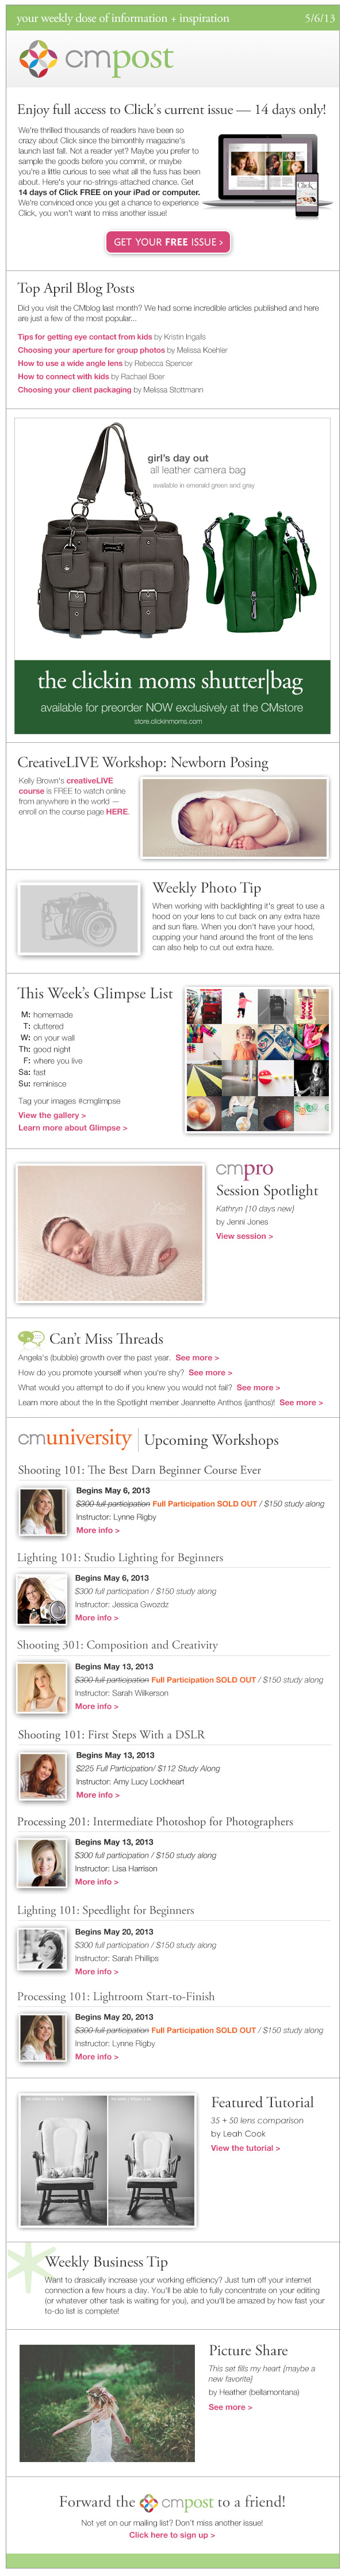 Enjoy a FREE issue of Click, newborn posing, and highlights from the CMblog